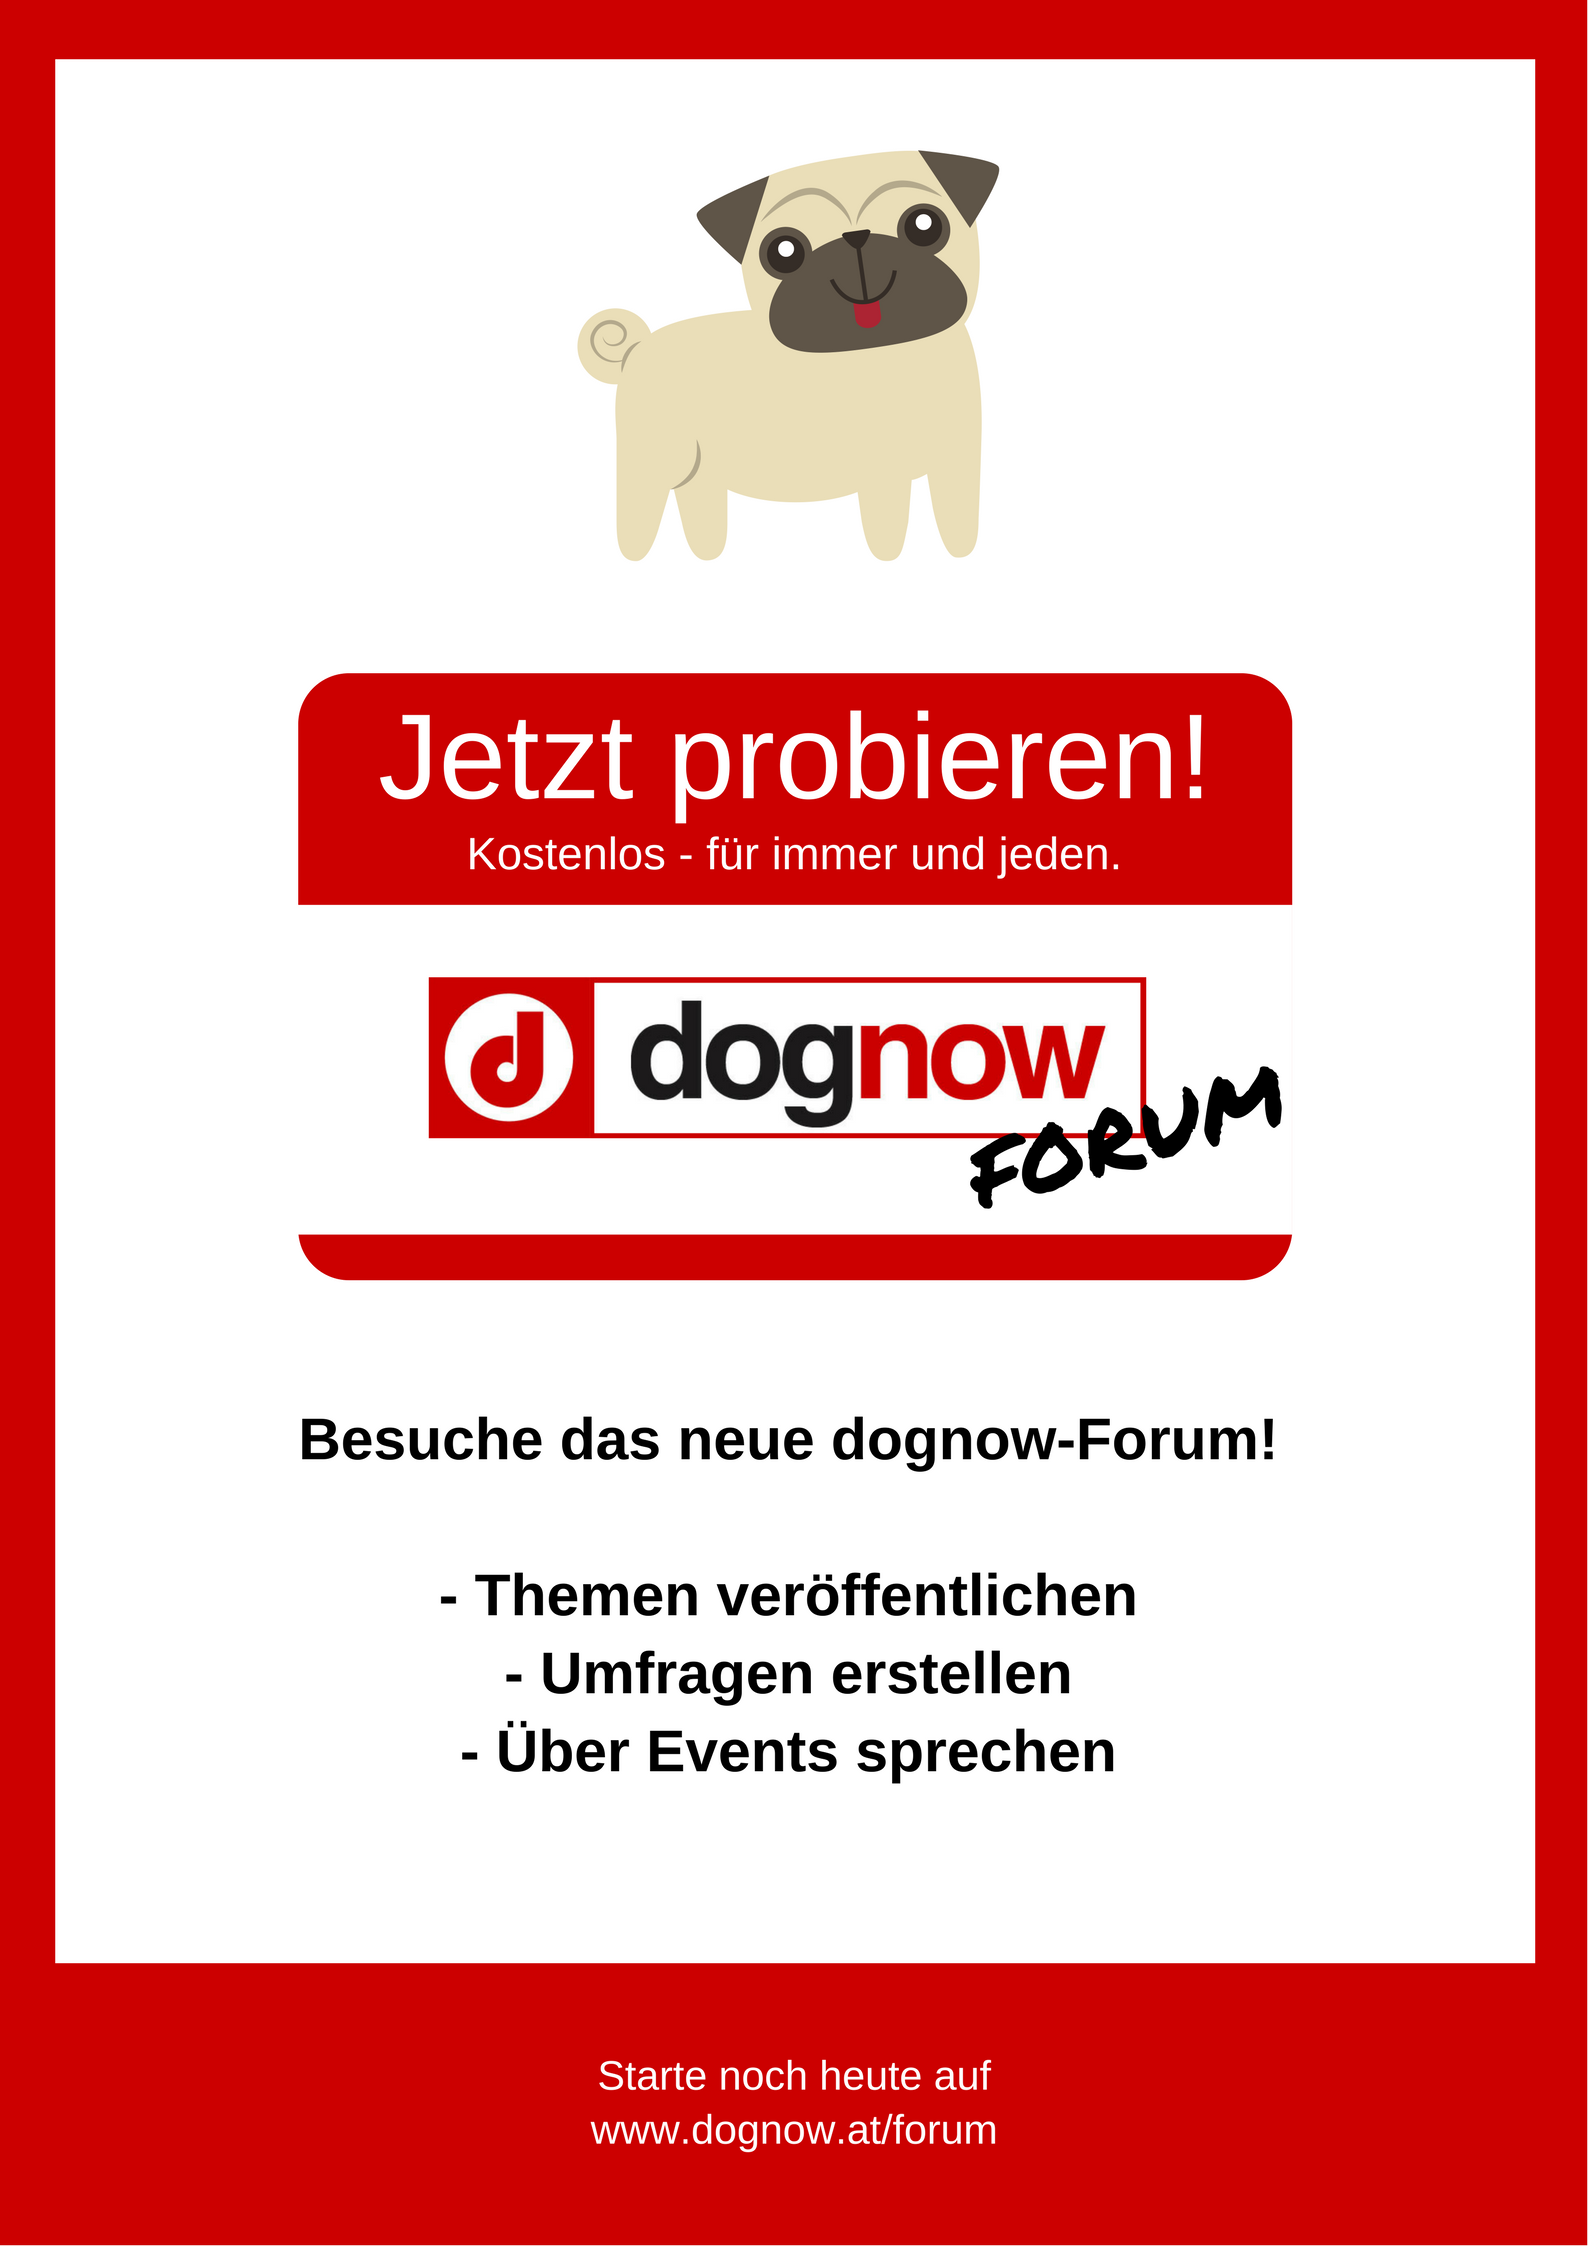 dognow Forum